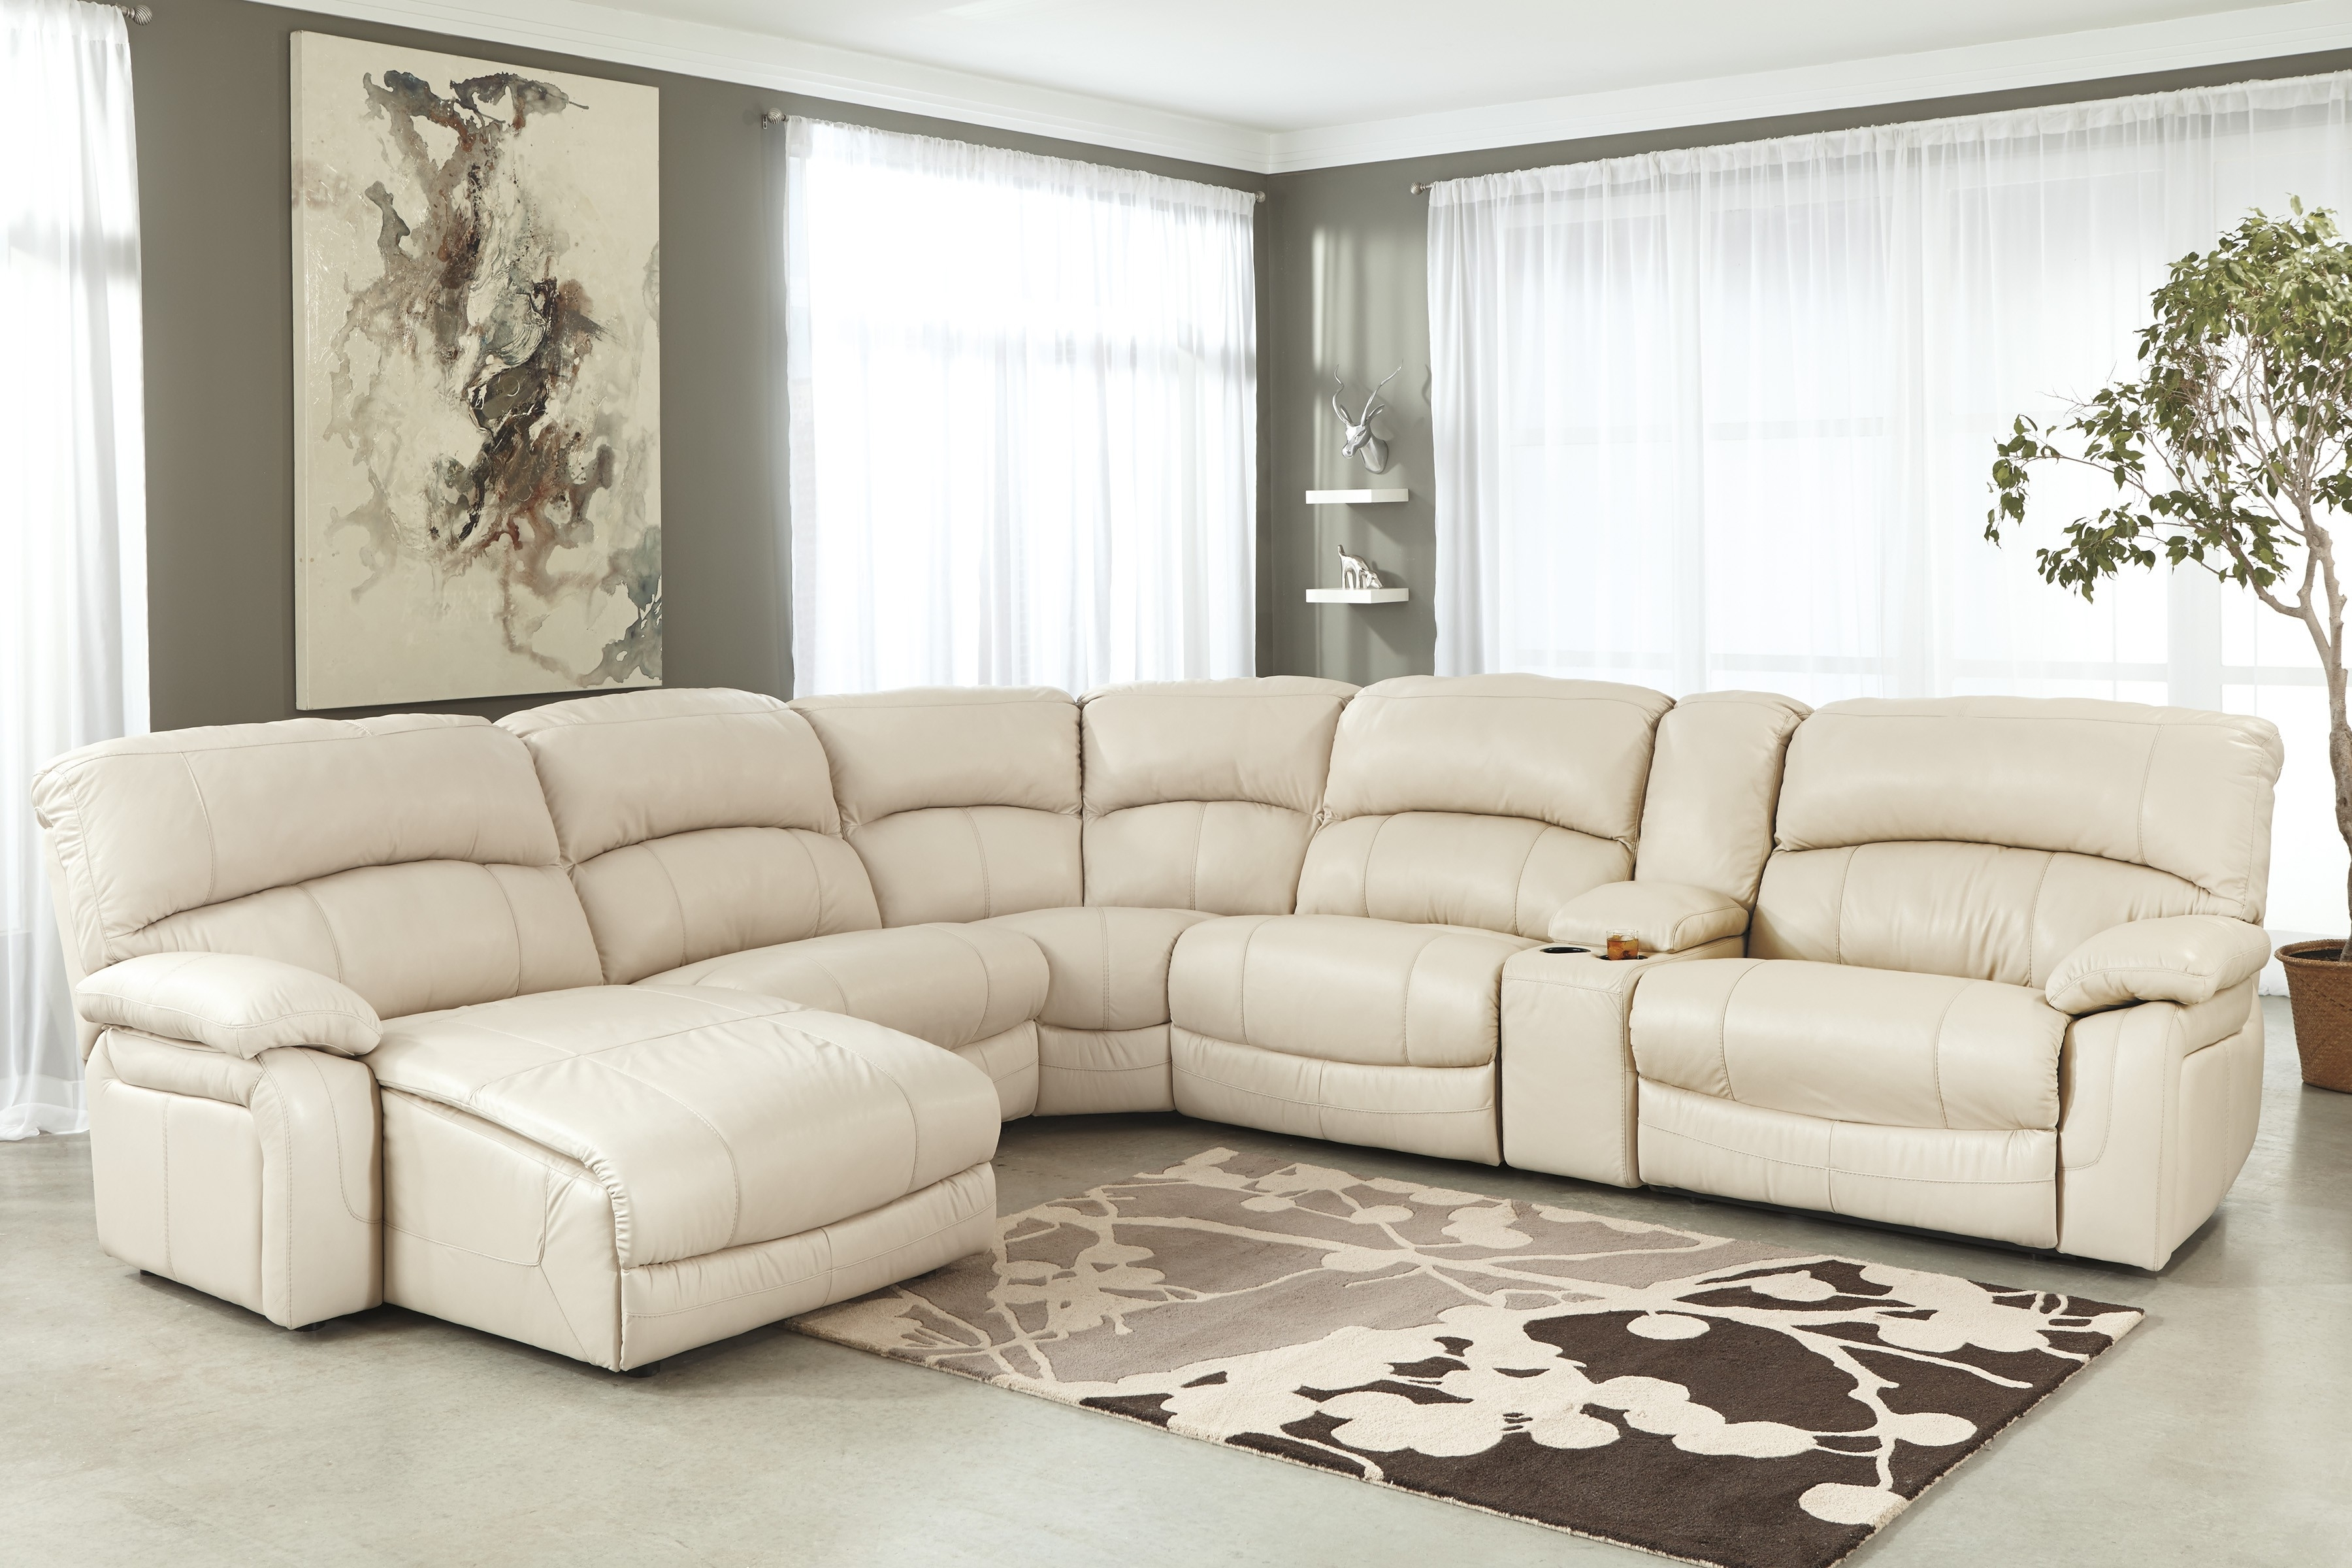 Sectional Sofa Design: Most Inspired White Leather Sectional Sofa With Preferred White Sectional Sofas With Chaise (View 4 of 15)